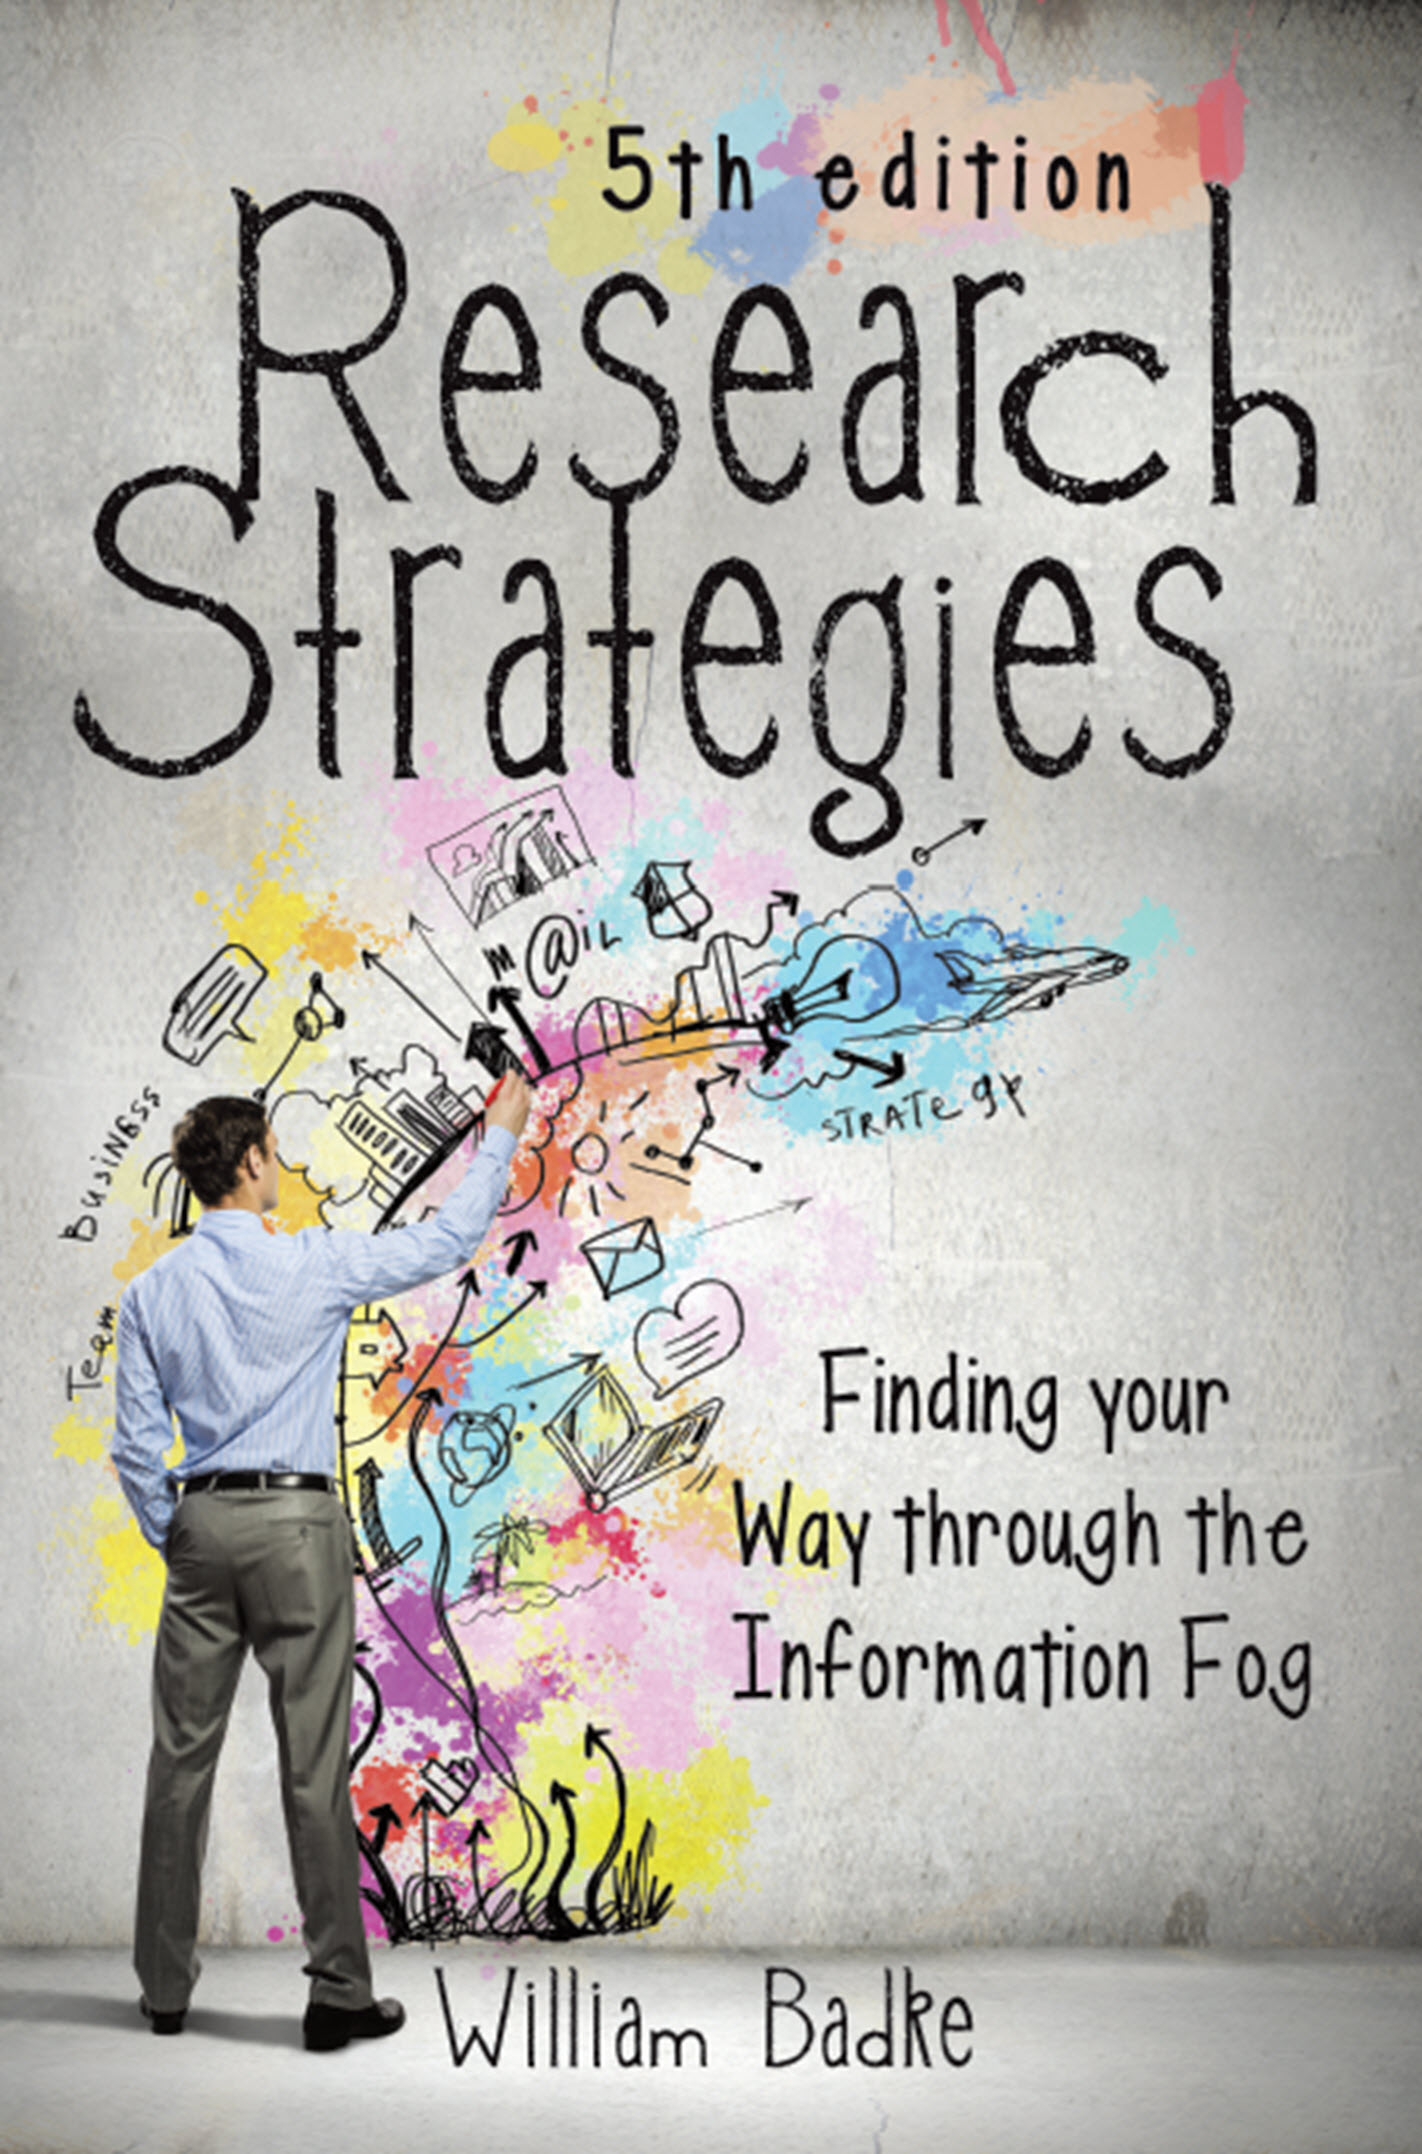 Research Strategies cover